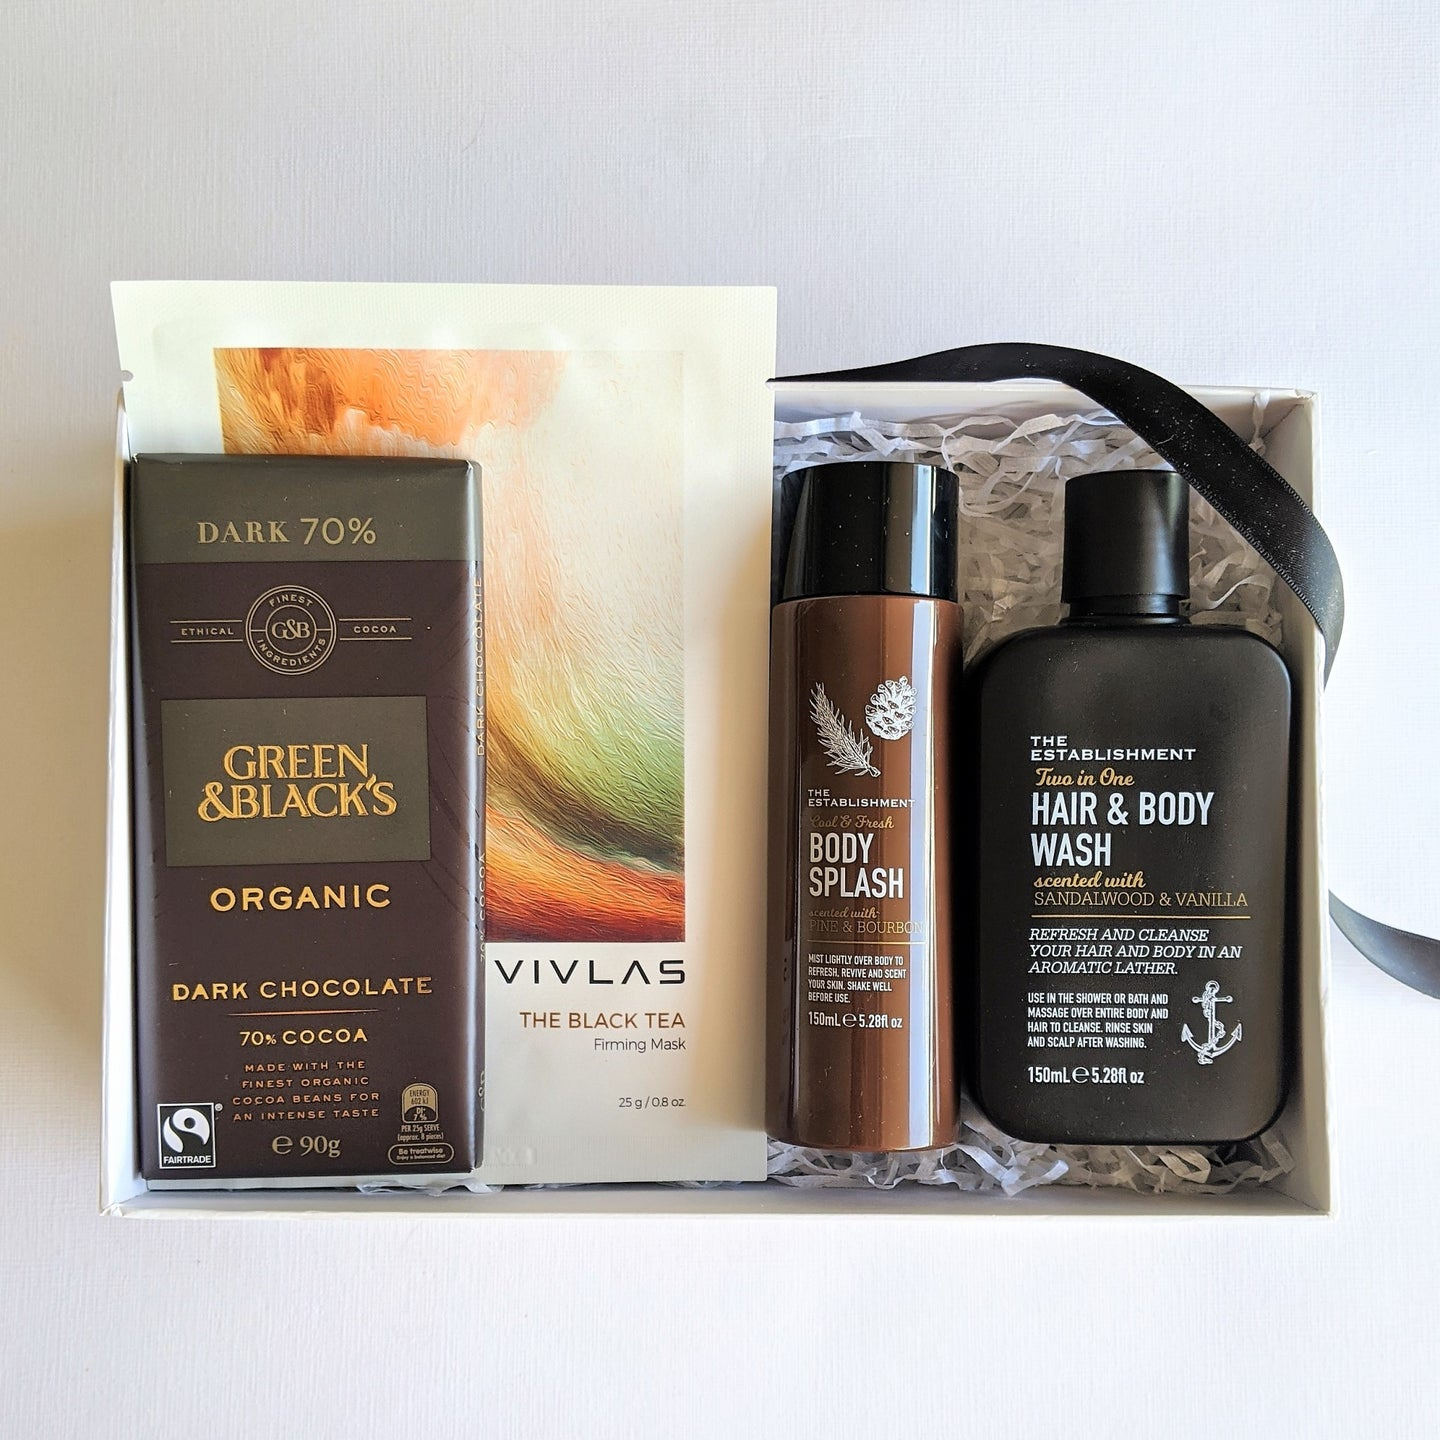 The Swirl Box Fathers day gift for him with organic chocolate, black tea face mask and bath and body products